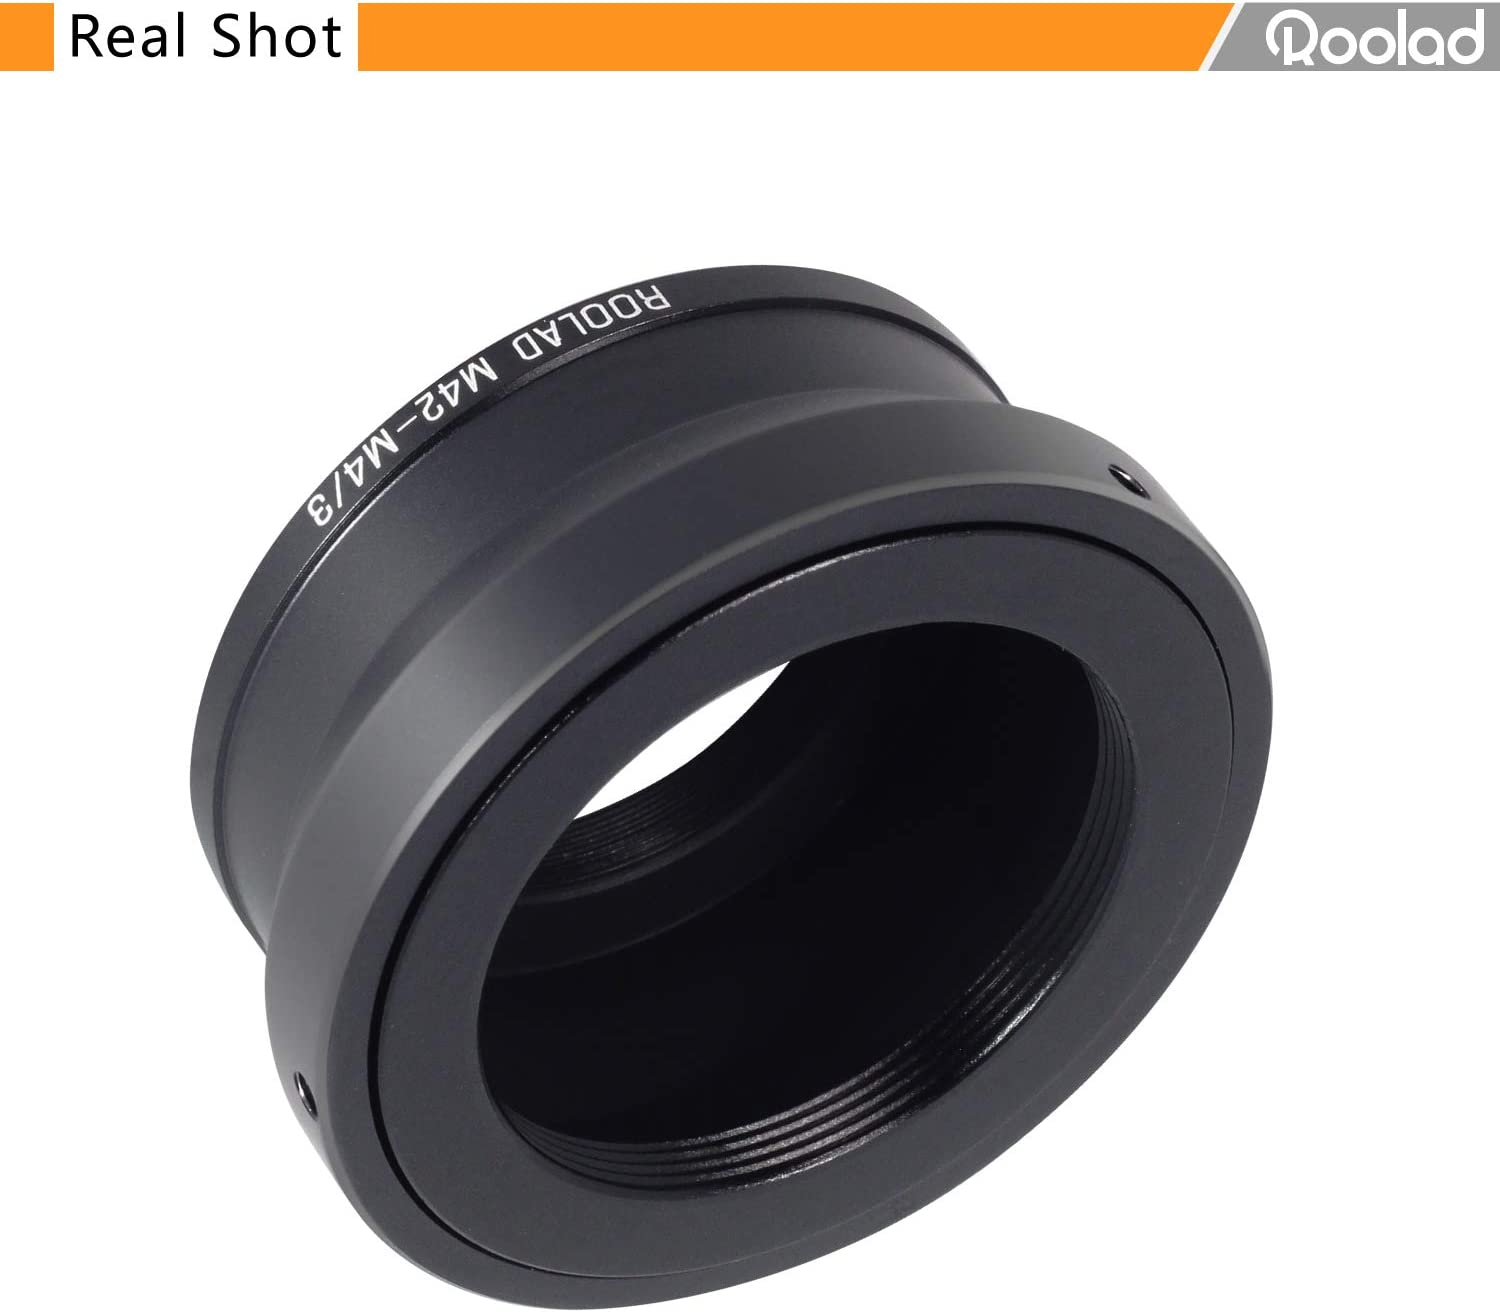 M42-M4//3 Adapter for pentacon zeiss Helios Lens to MFT Camera Olympus No Plate, Silver Panasonic etc. XiaoYi